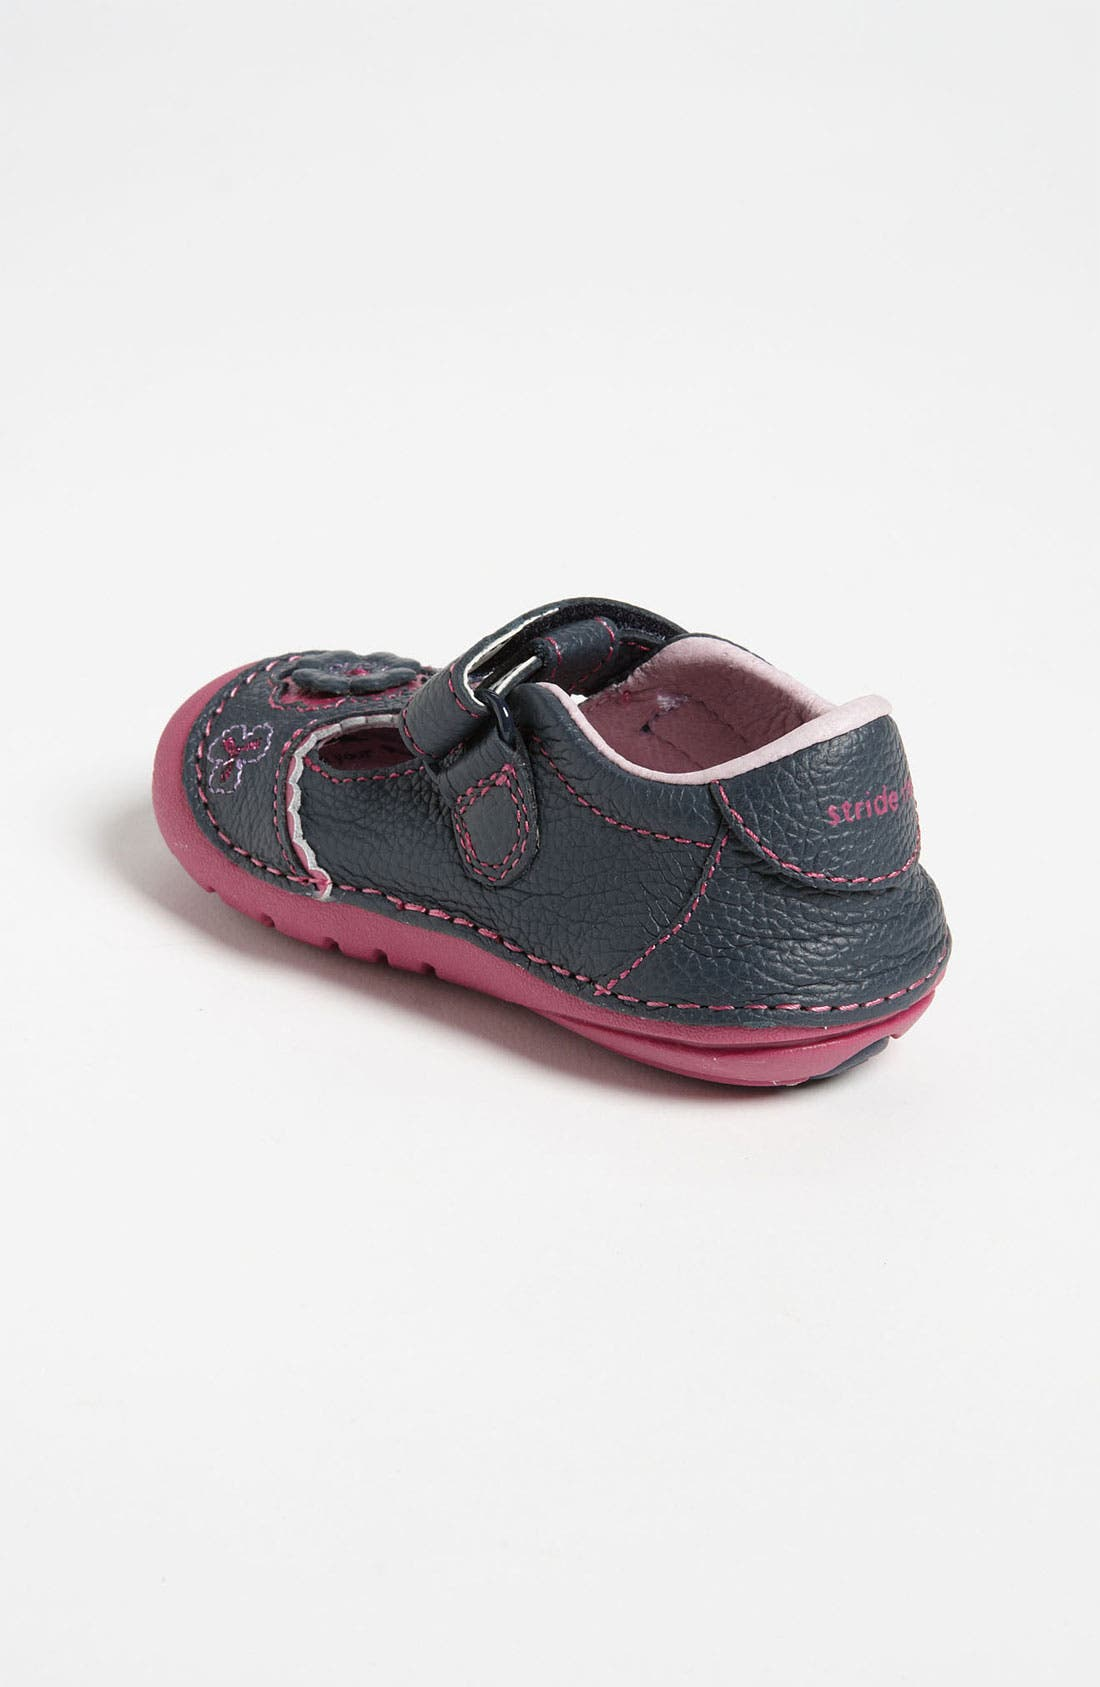 Alternate Image 2  - Stride Rite 'Mae' Sandal (Baby & Walker)